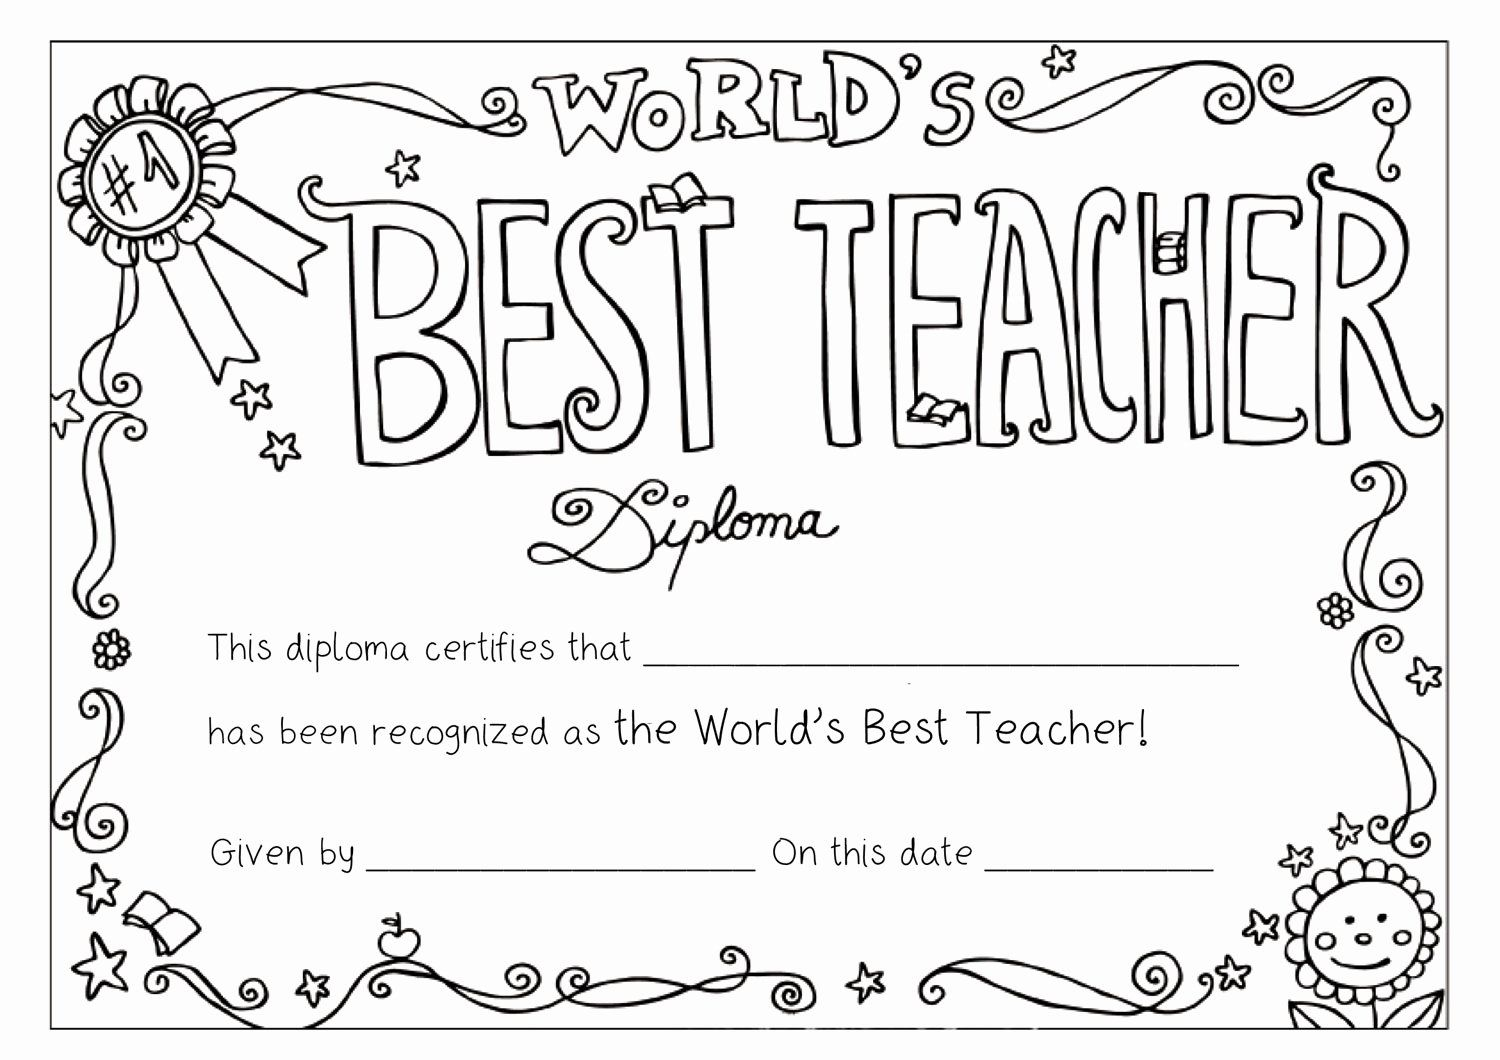 Best Teacher Award Certificate Awesome Teacher Coloring Pages Best Coloring Pages Teacher Awards Teacher Appreciation Week Printables Teacher Appreciation Week